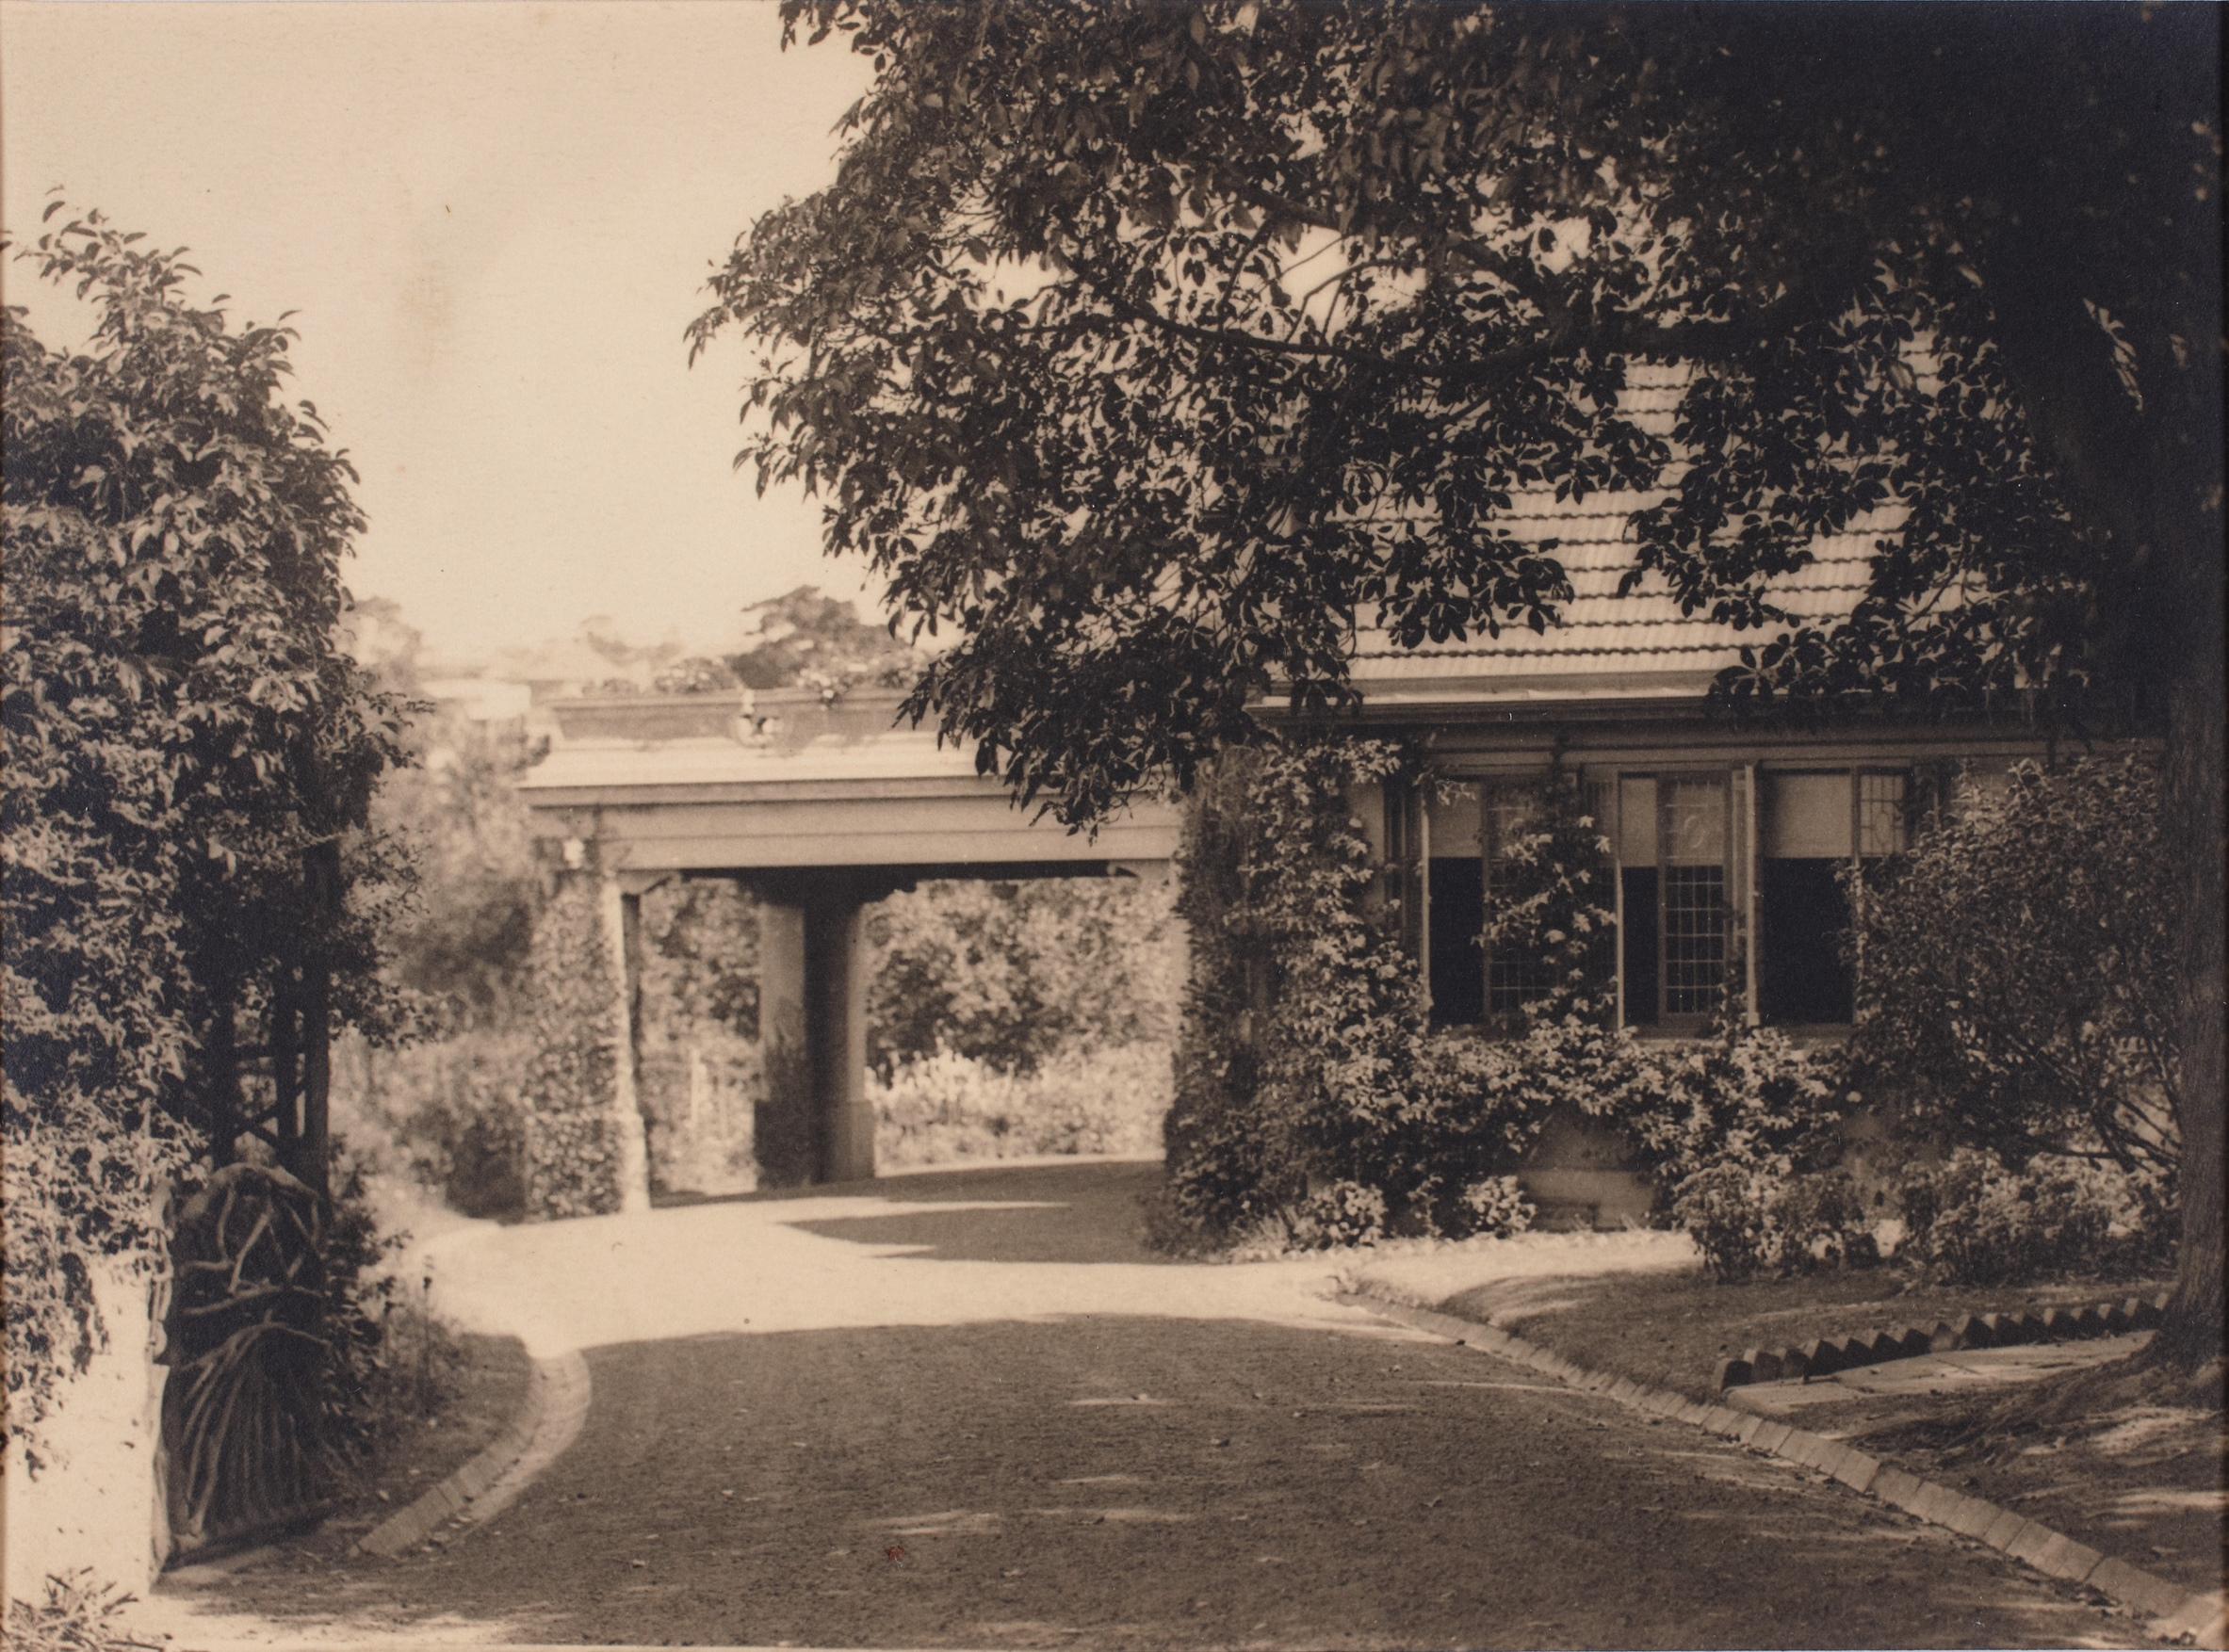 Approach to the porte-cochere at Brooksby, Ocean Avenue, Double Bay, Sydney, New South Wales, 1922 / Harold Cazneaux